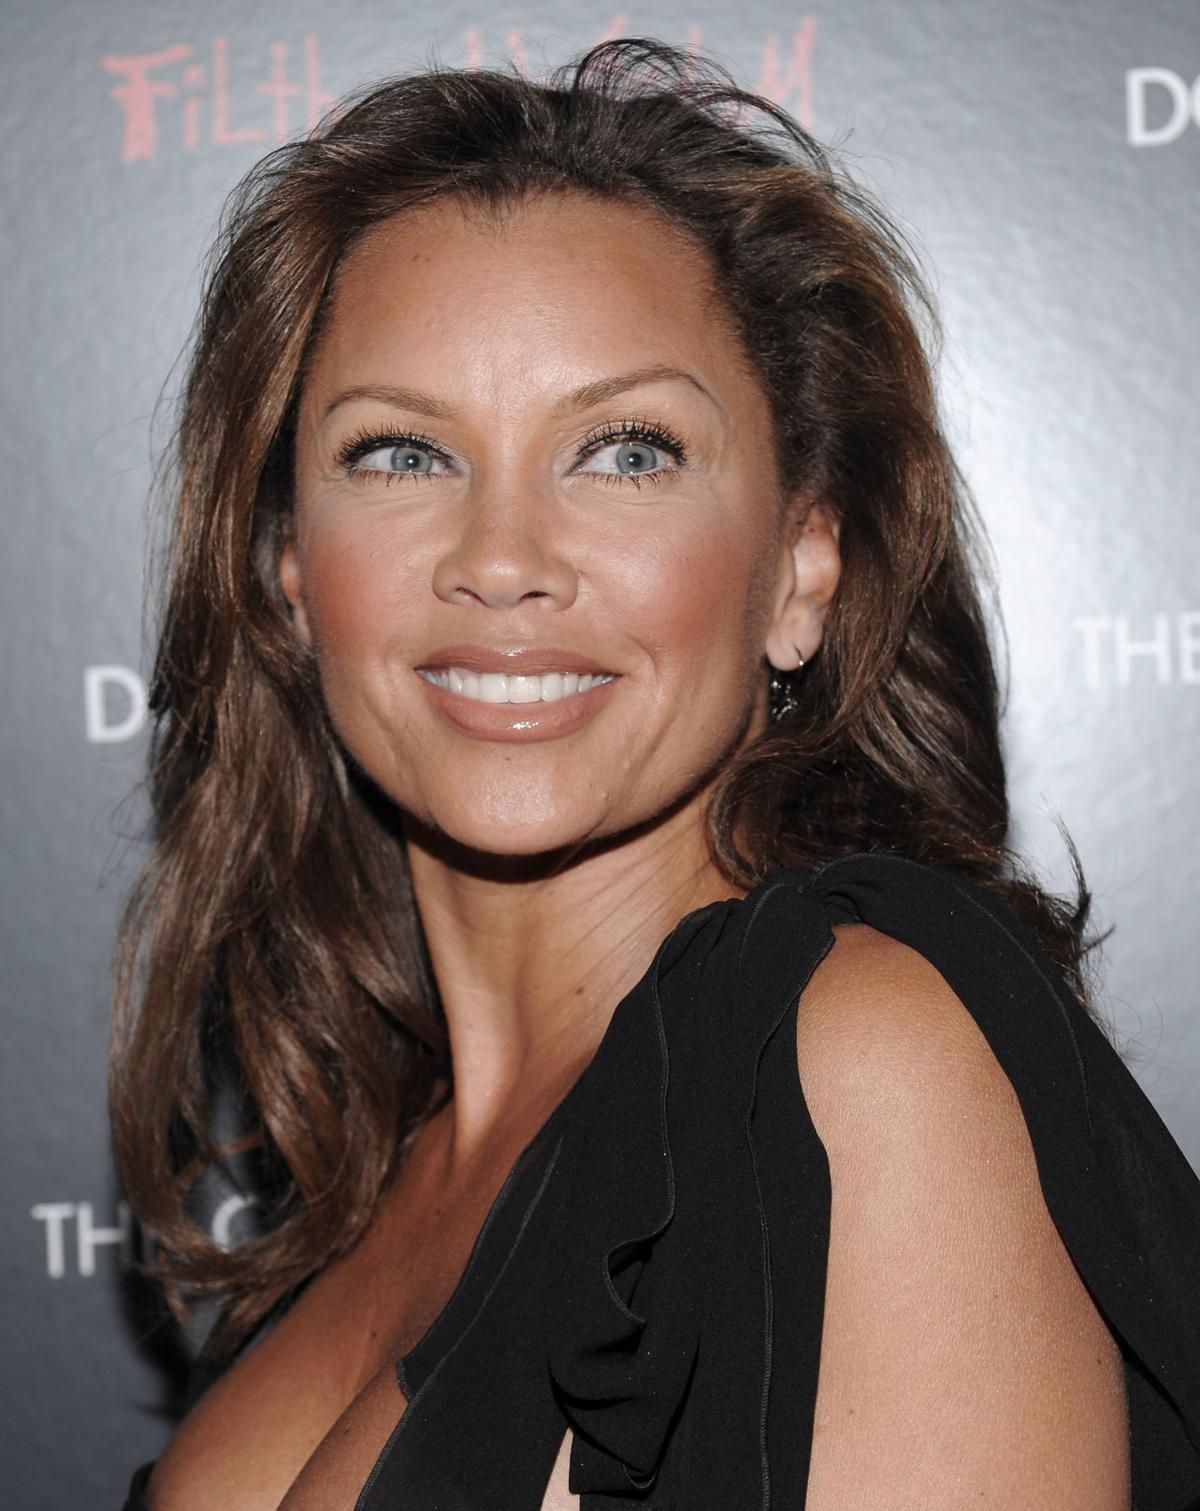 The Public Pulse: Vanessa Williams a treat | Opinion ... Vanessa Williams